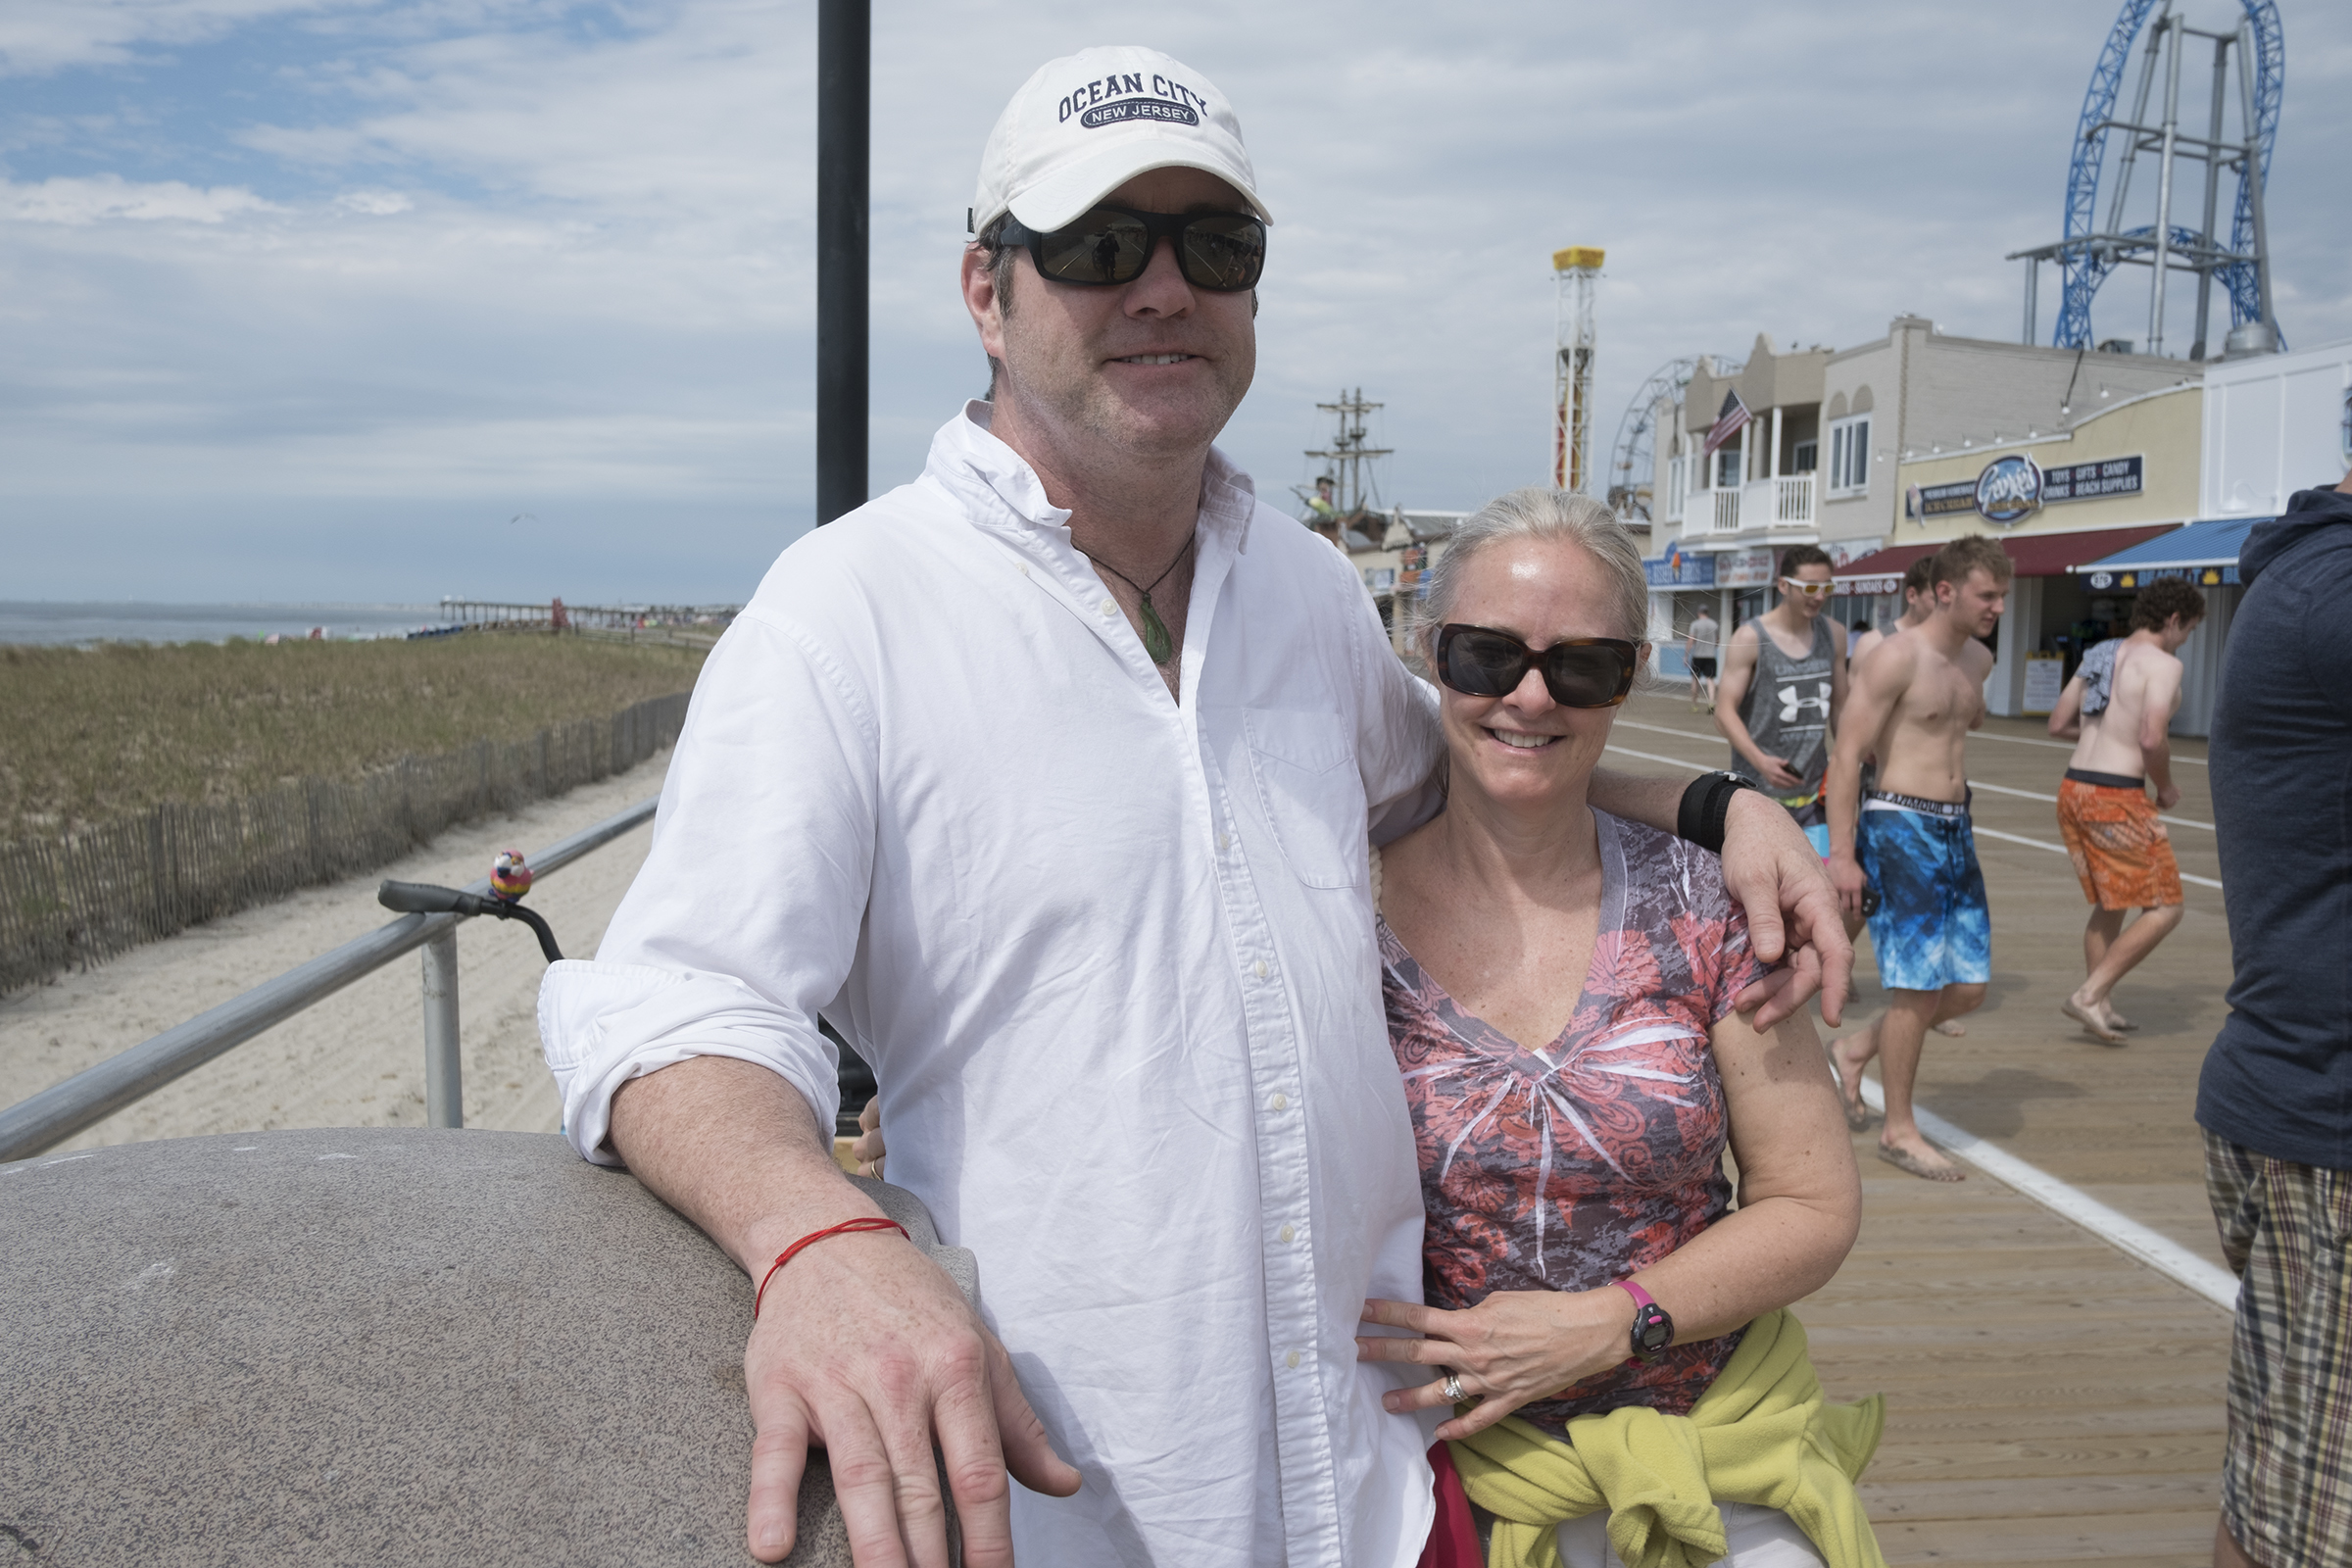 On the boardwalk in Ocean City, Kieran and Mimi Shea like the Shore so much they travel from Annapolis, Md.